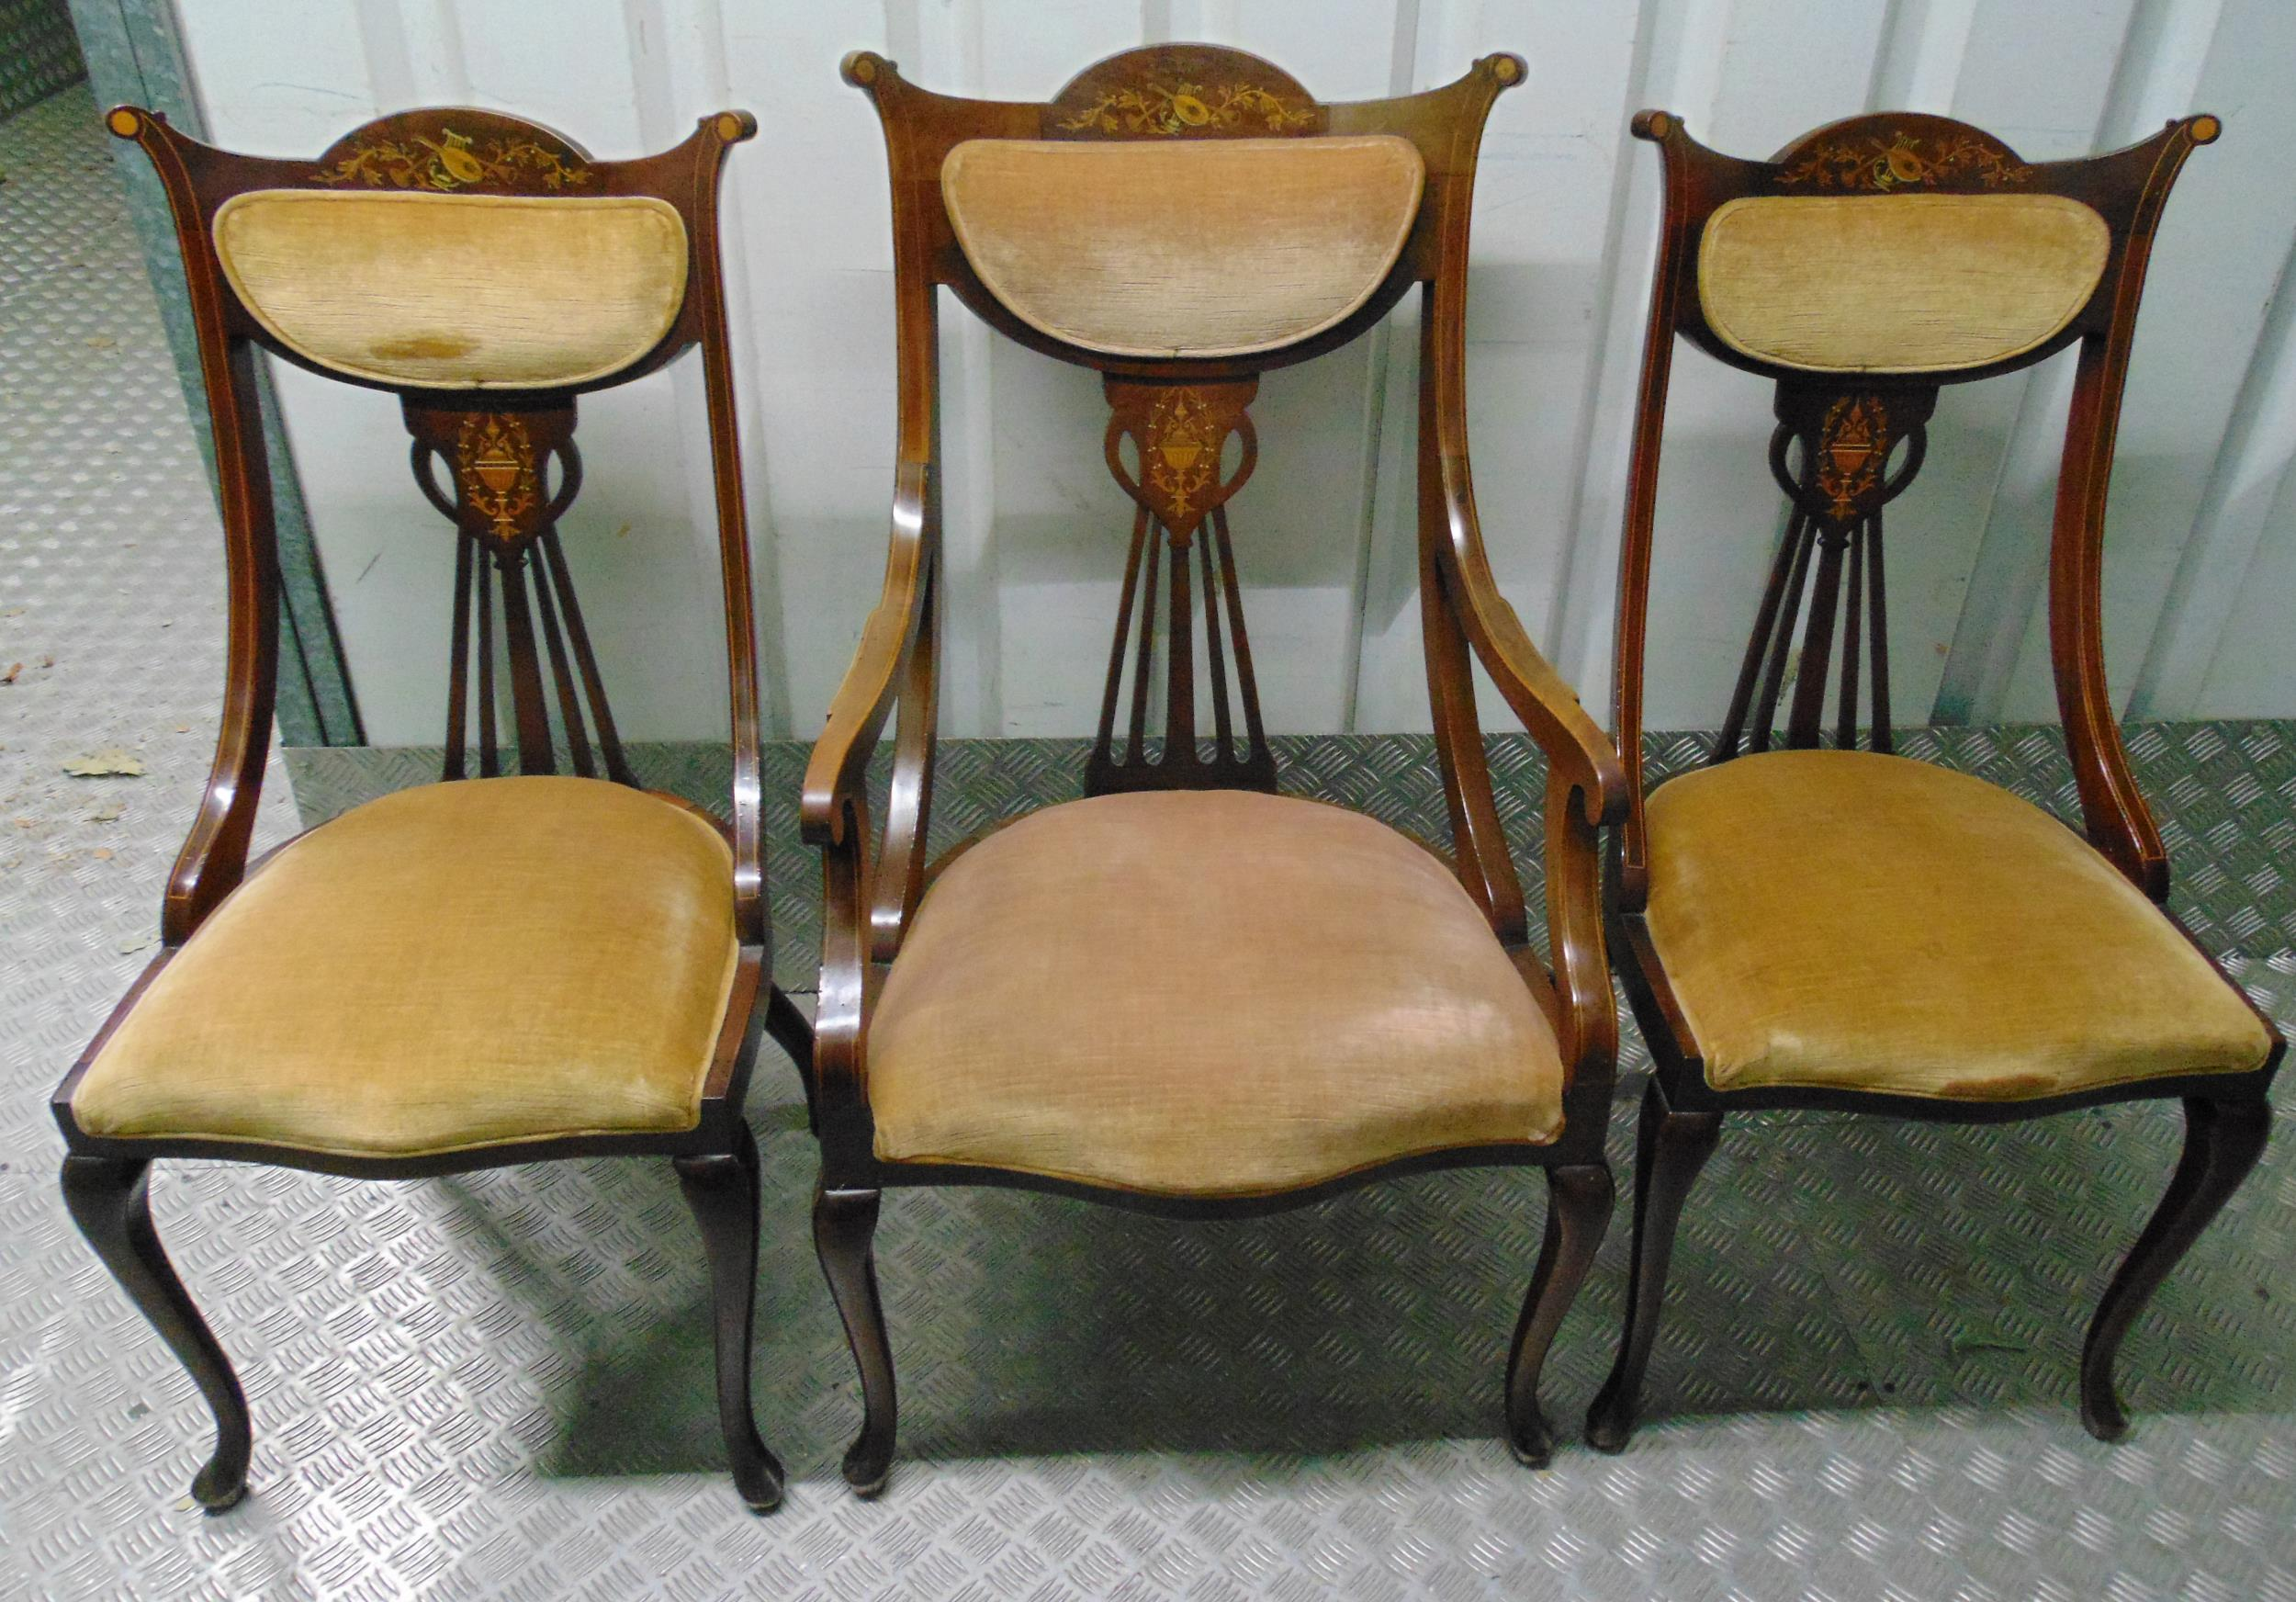 A suite of three Edwardian mahogany occasional chairs with satinwood inlays and upholstered seats